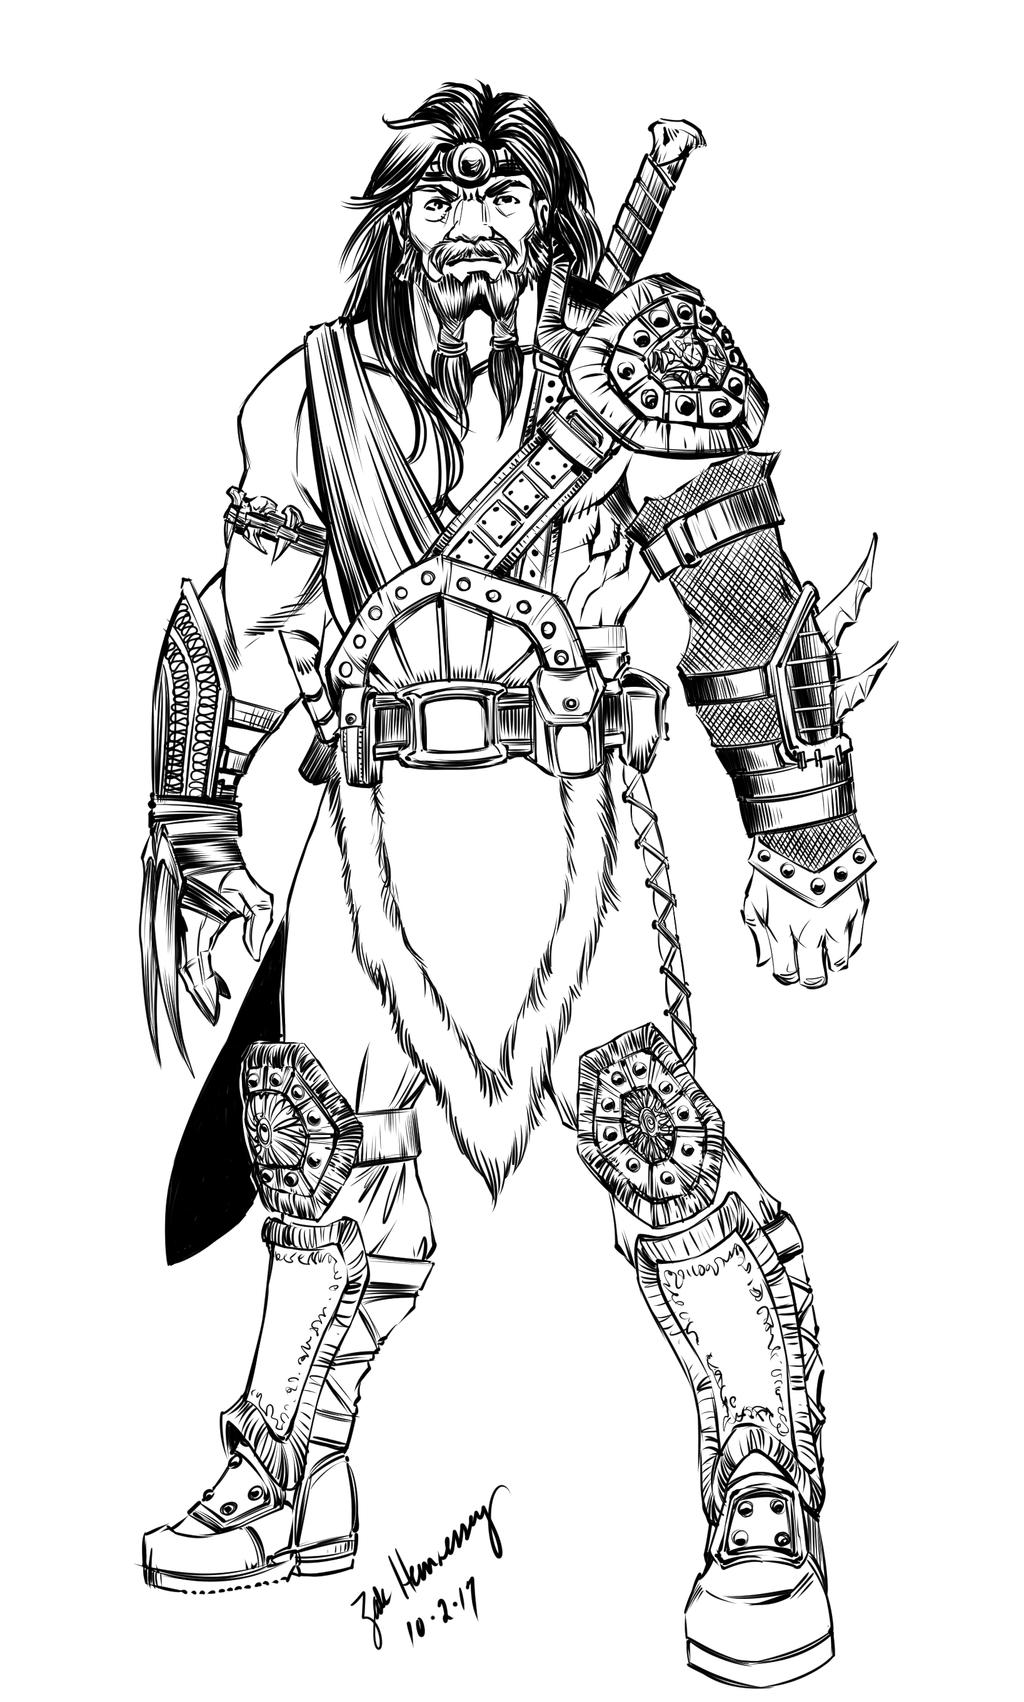 how to draw a barbarian barbarian worrior athala warrior drawing art comic art how draw a barbarian to